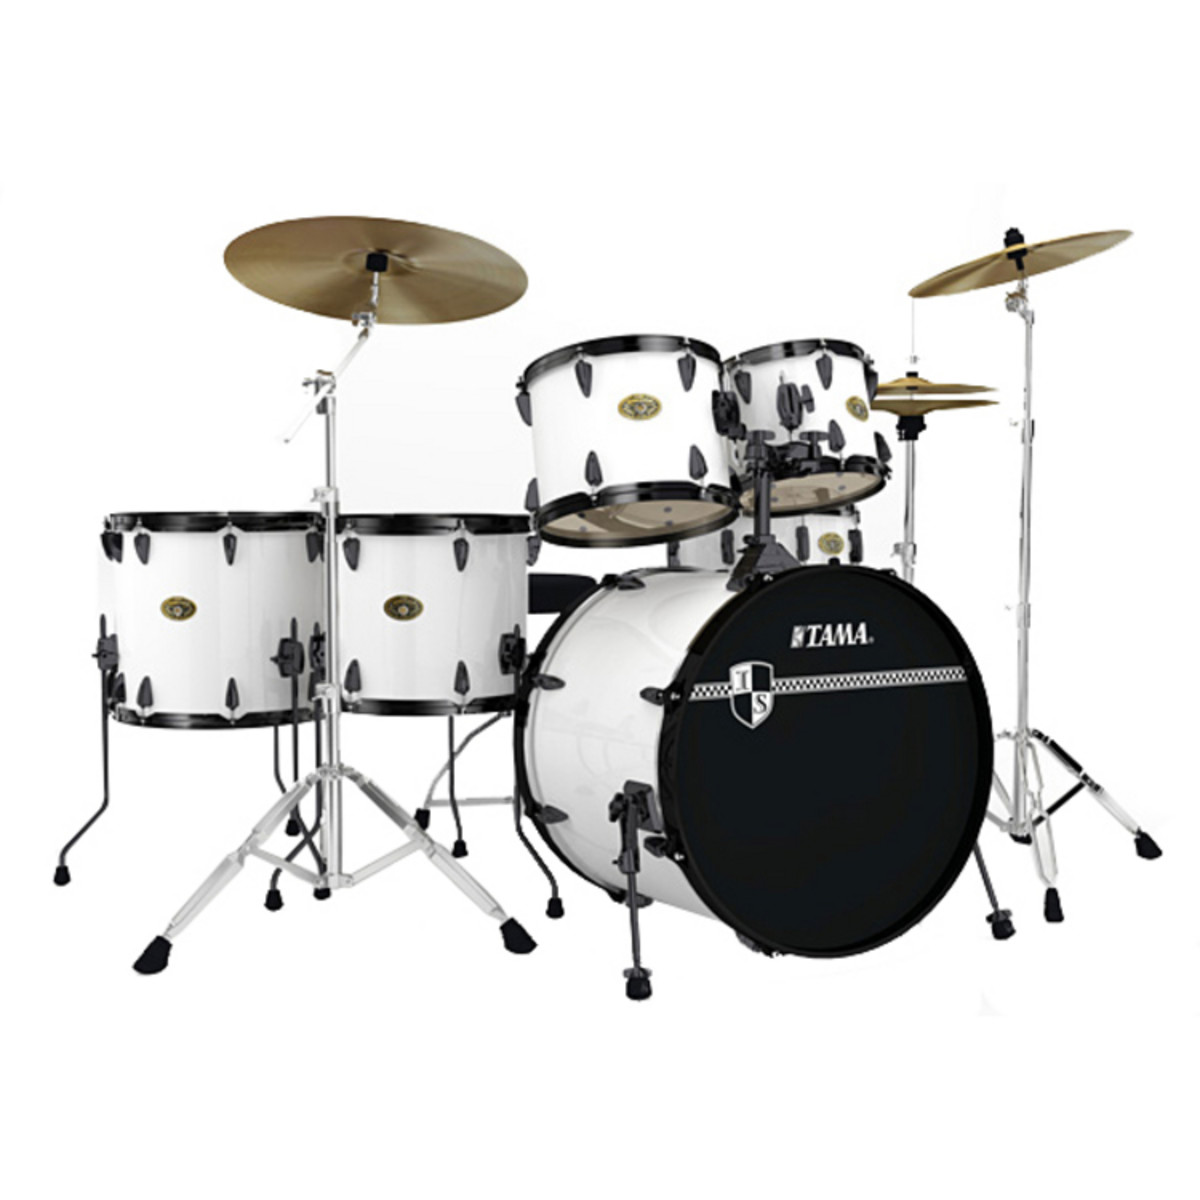 disc tama imperialstar limited edition 22 drum kit sugar white at gear4music. Black Bedroom Furniture Sets. Home Design Ideas